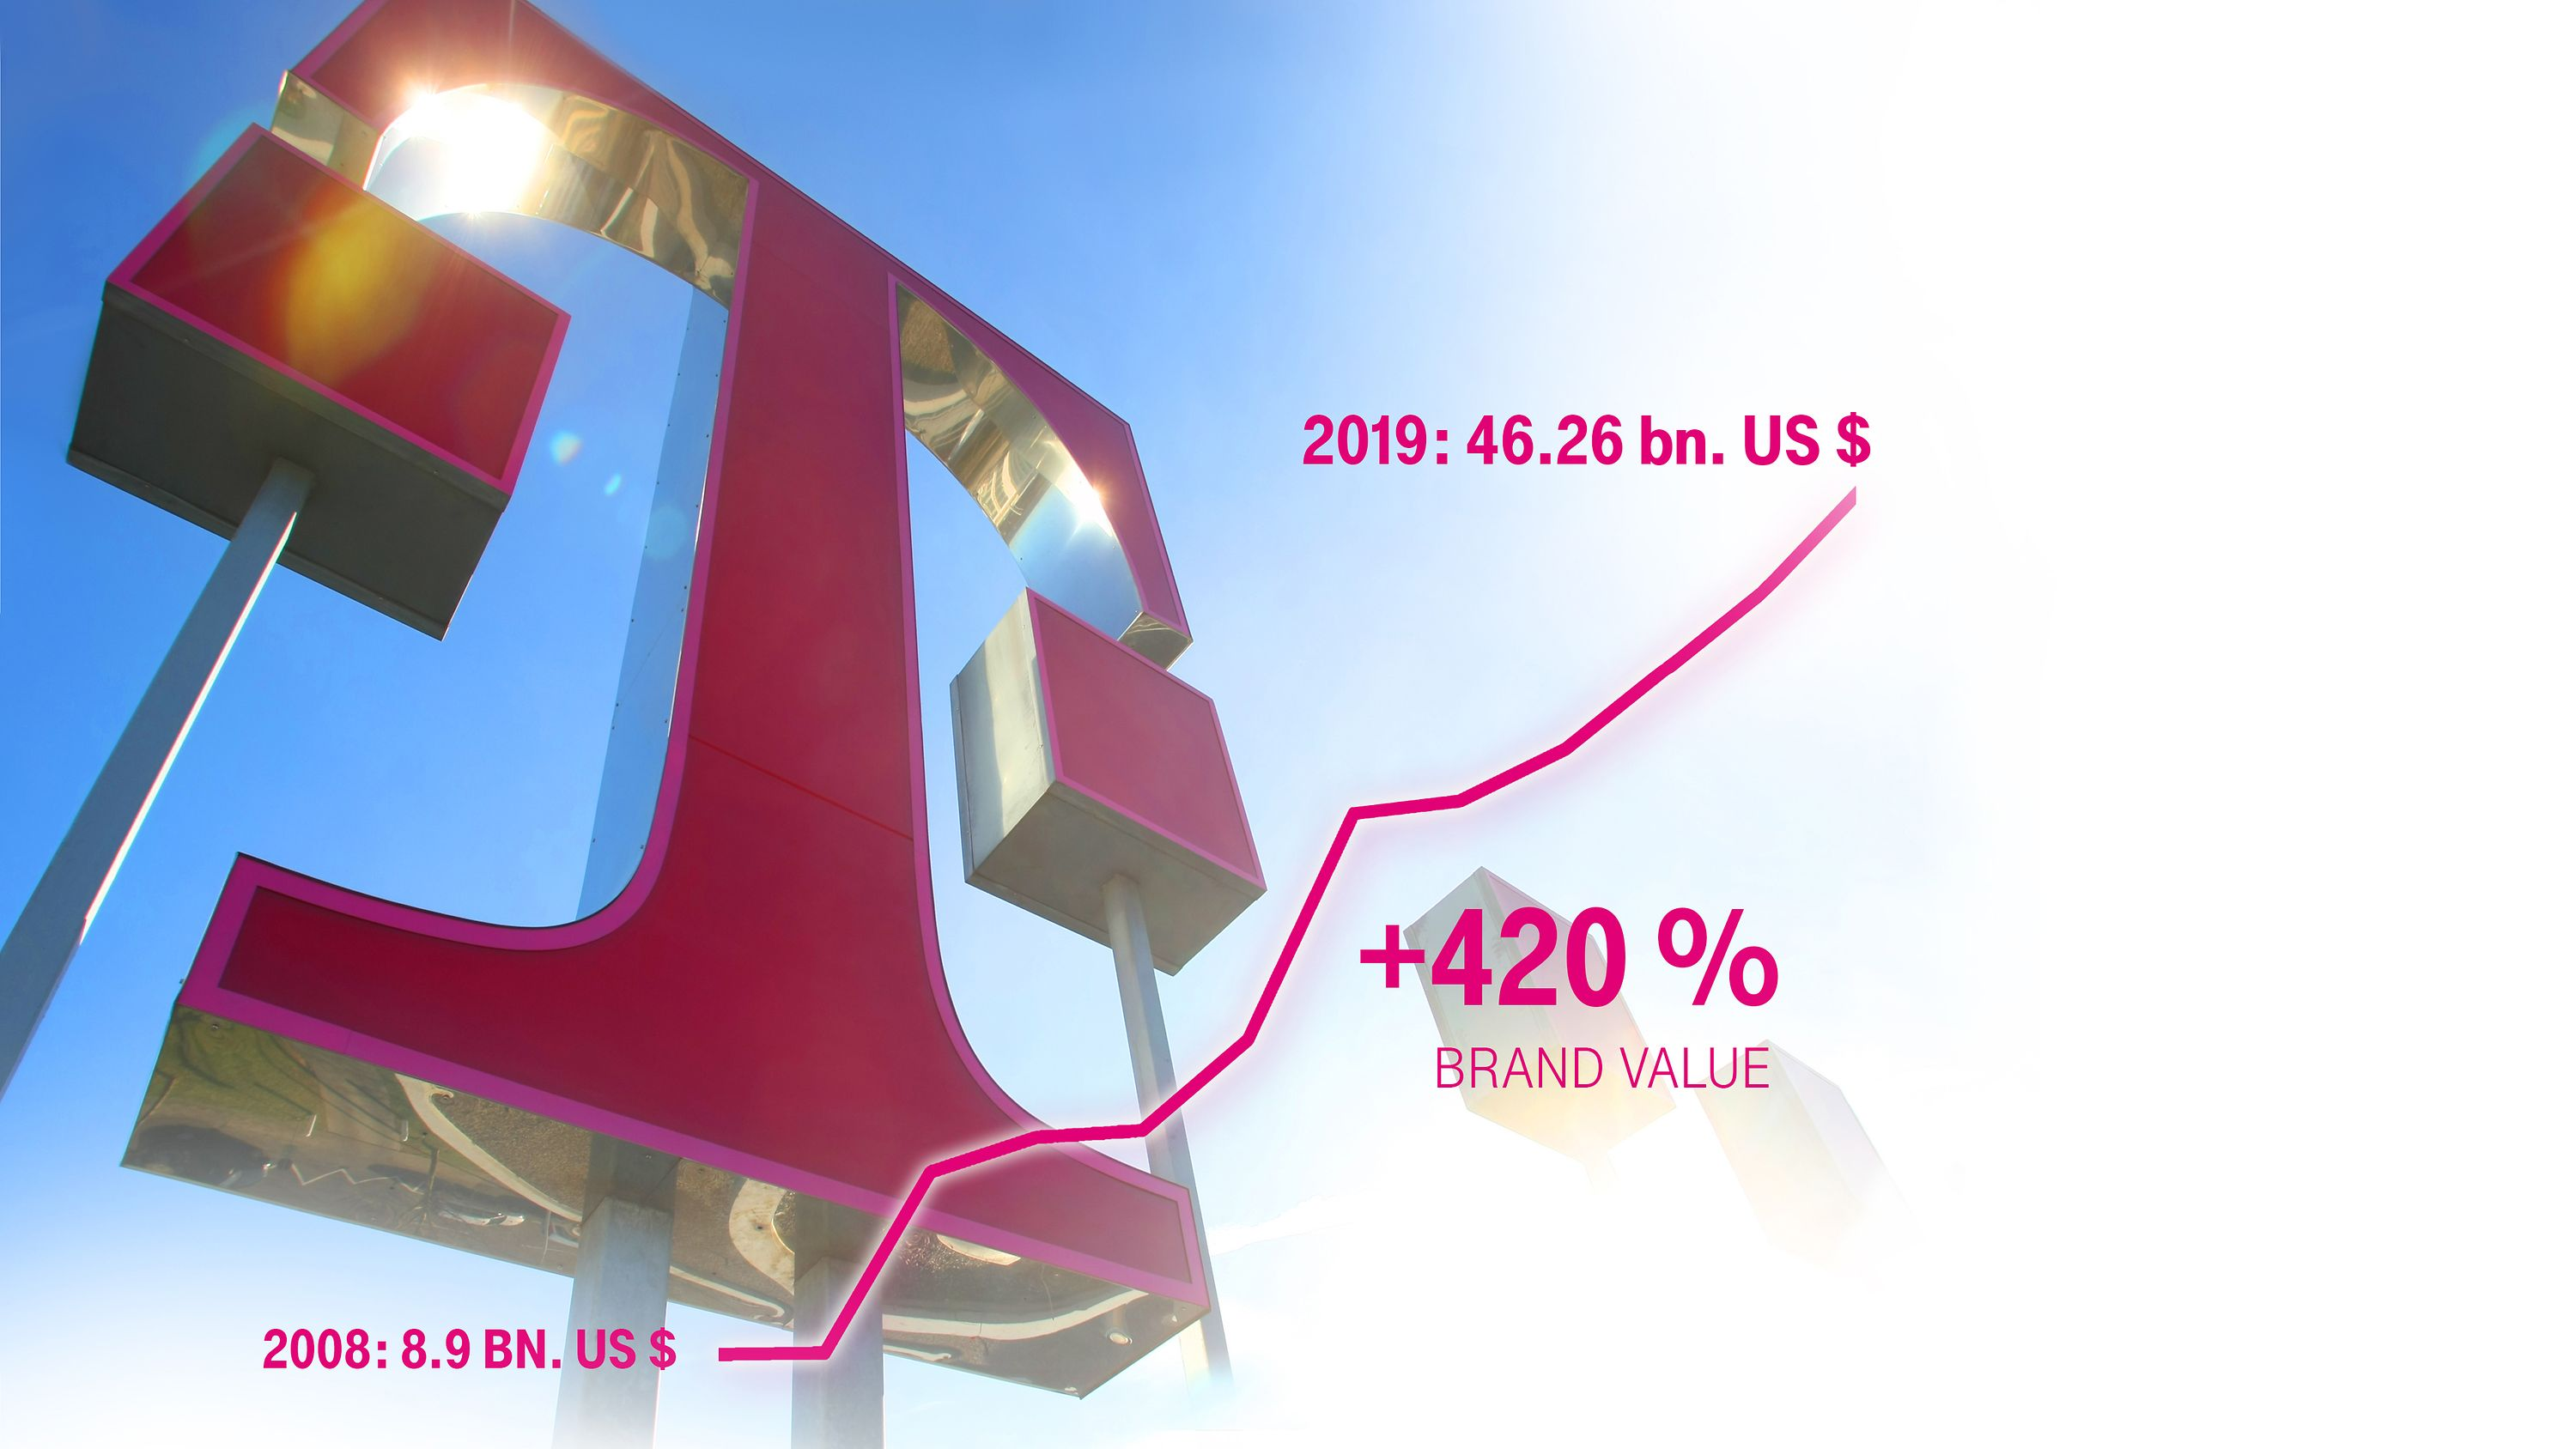 Since its relaunch in 2008, the brand has seen continuous growth in value, increasing by an impressive 420 percent.